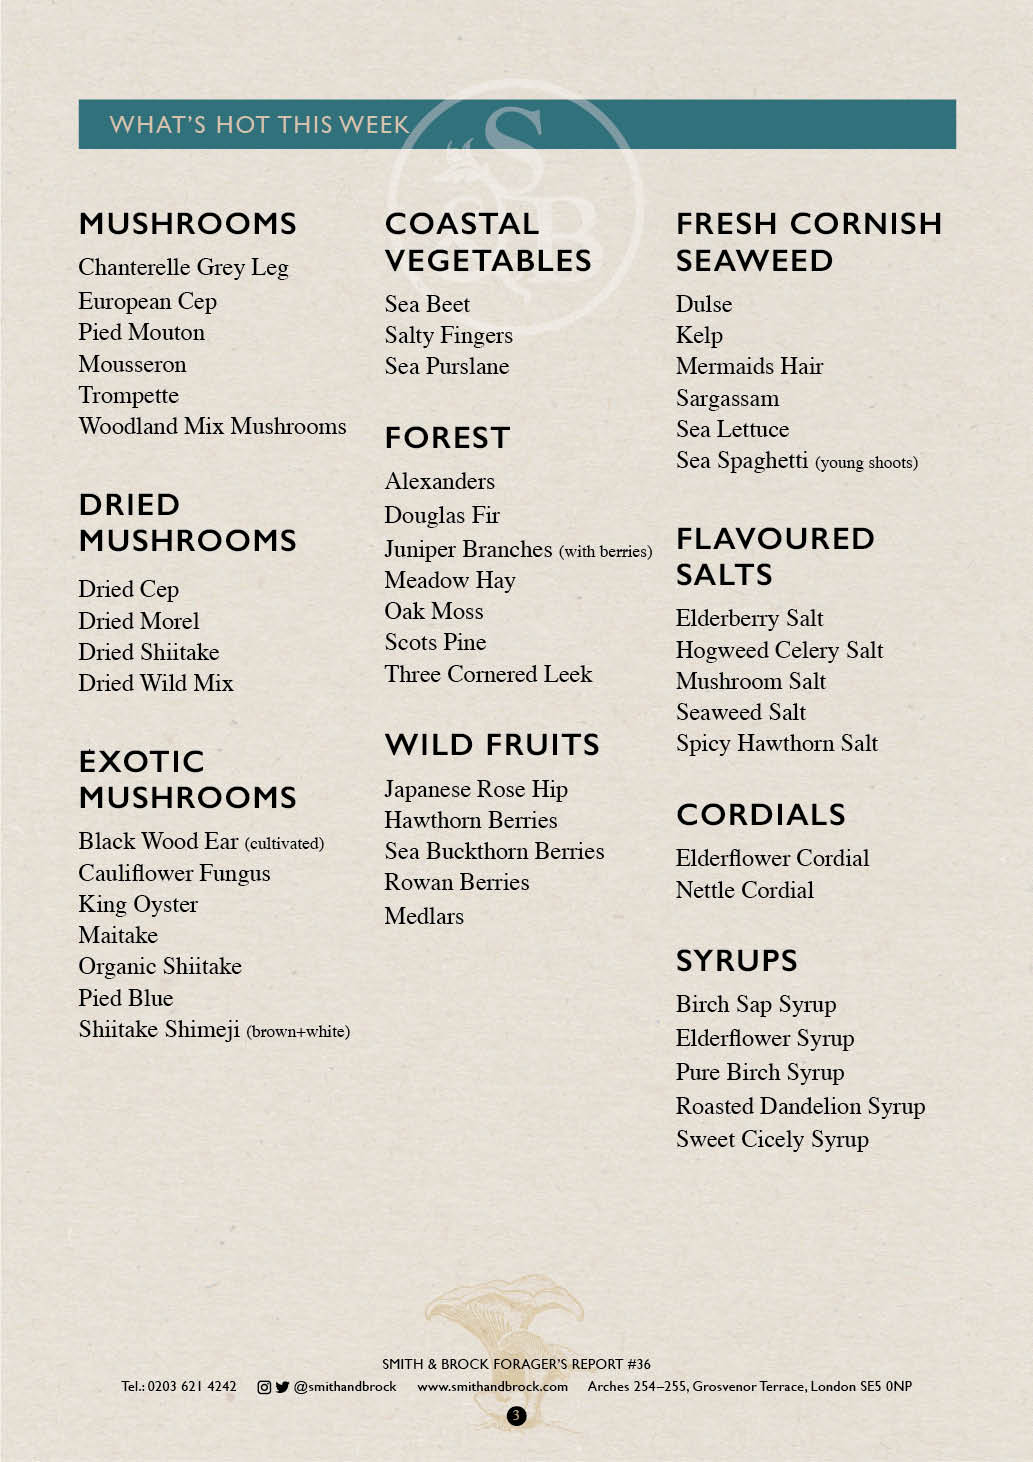 Smith&Brock Foraged Products Report 08 Dec 2019 36 3